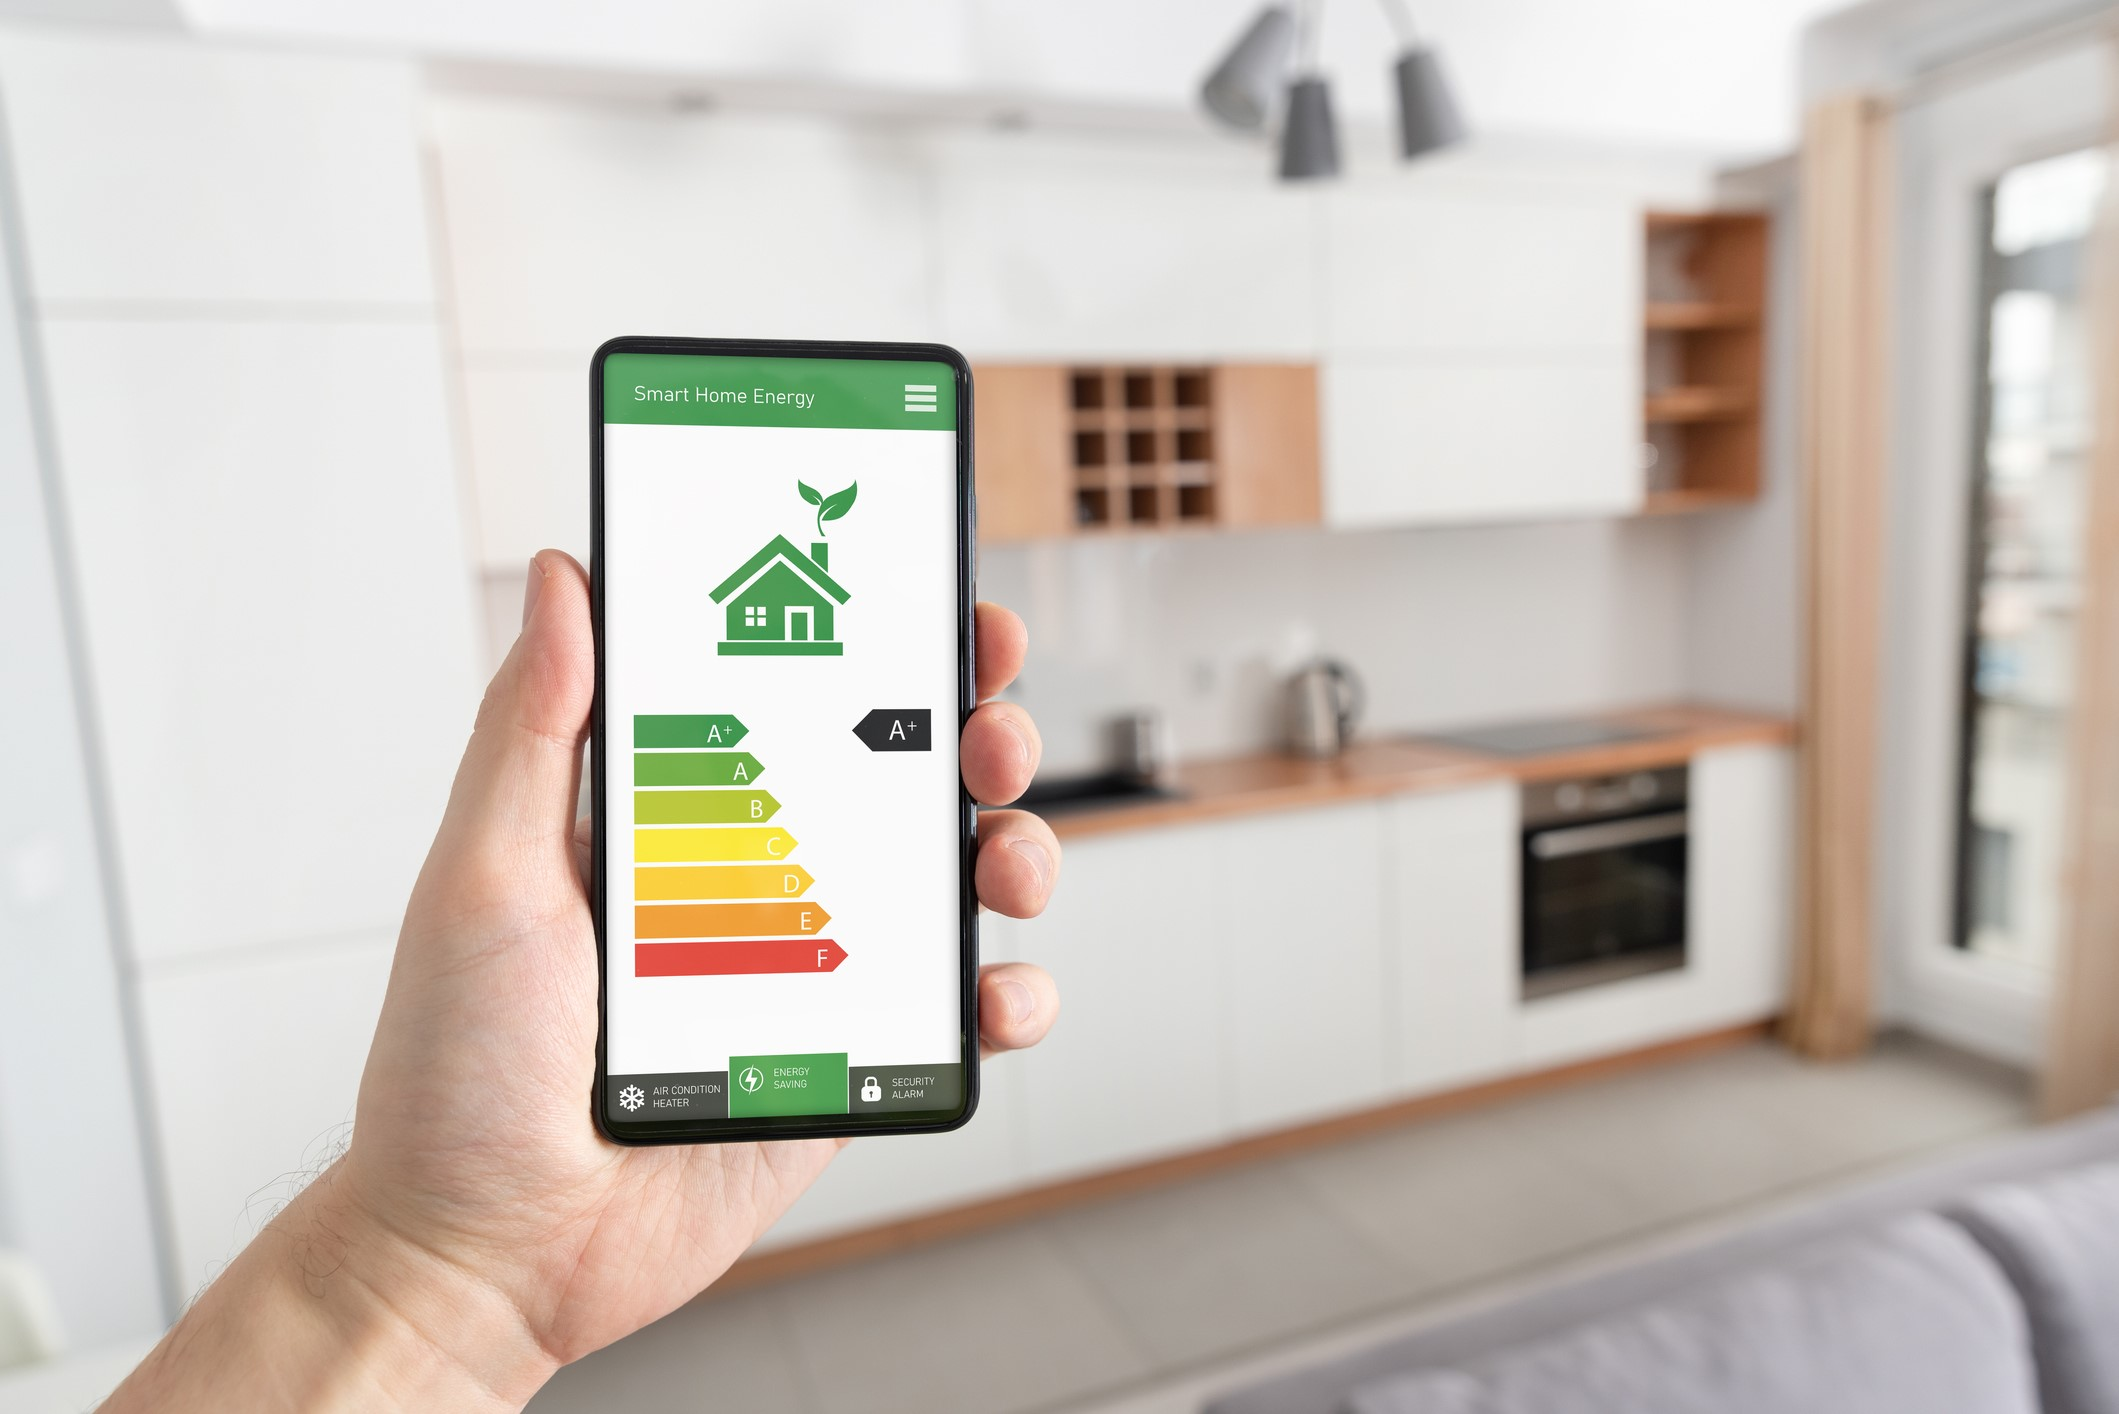 A homeowner using a mobile phone application to monitor and adjust the energy efficiency of their HVAC system